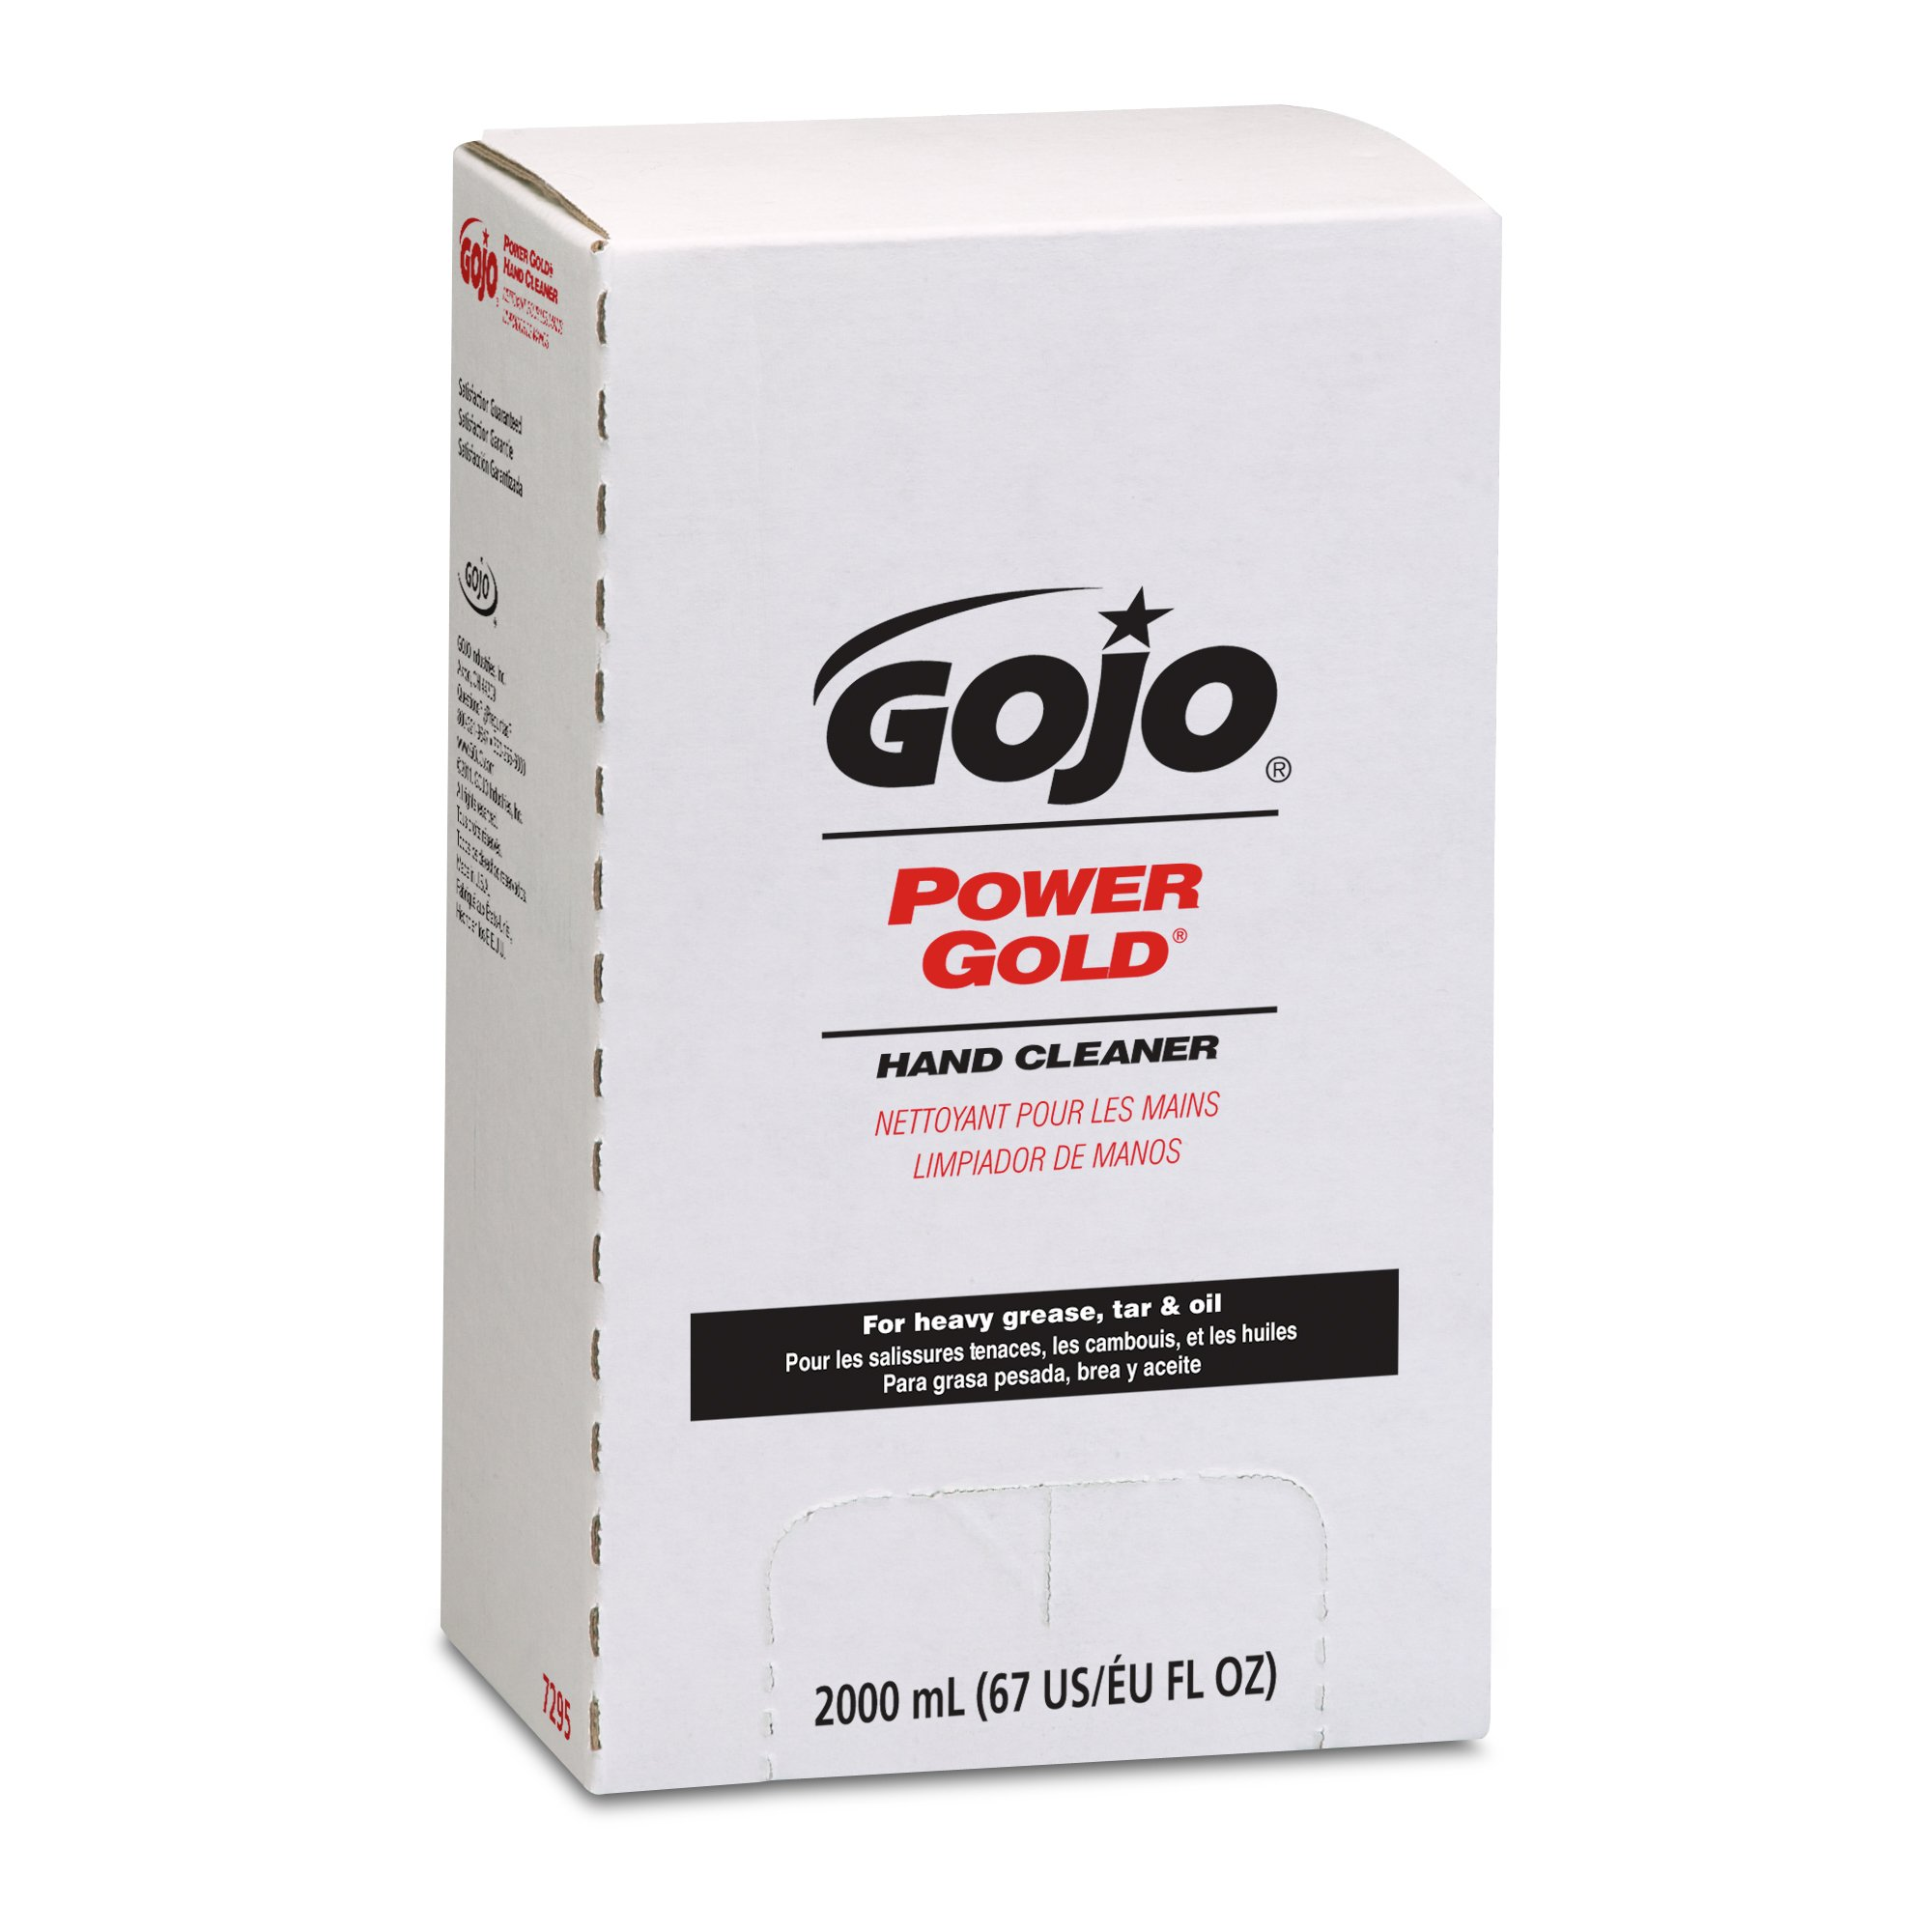 GOJO 7295 POWER GOLD Hand Cleaner, Citrus Scent, 2000mL Refill (Case of 4),Compatible with Dispenser #7200-01 by Gojo